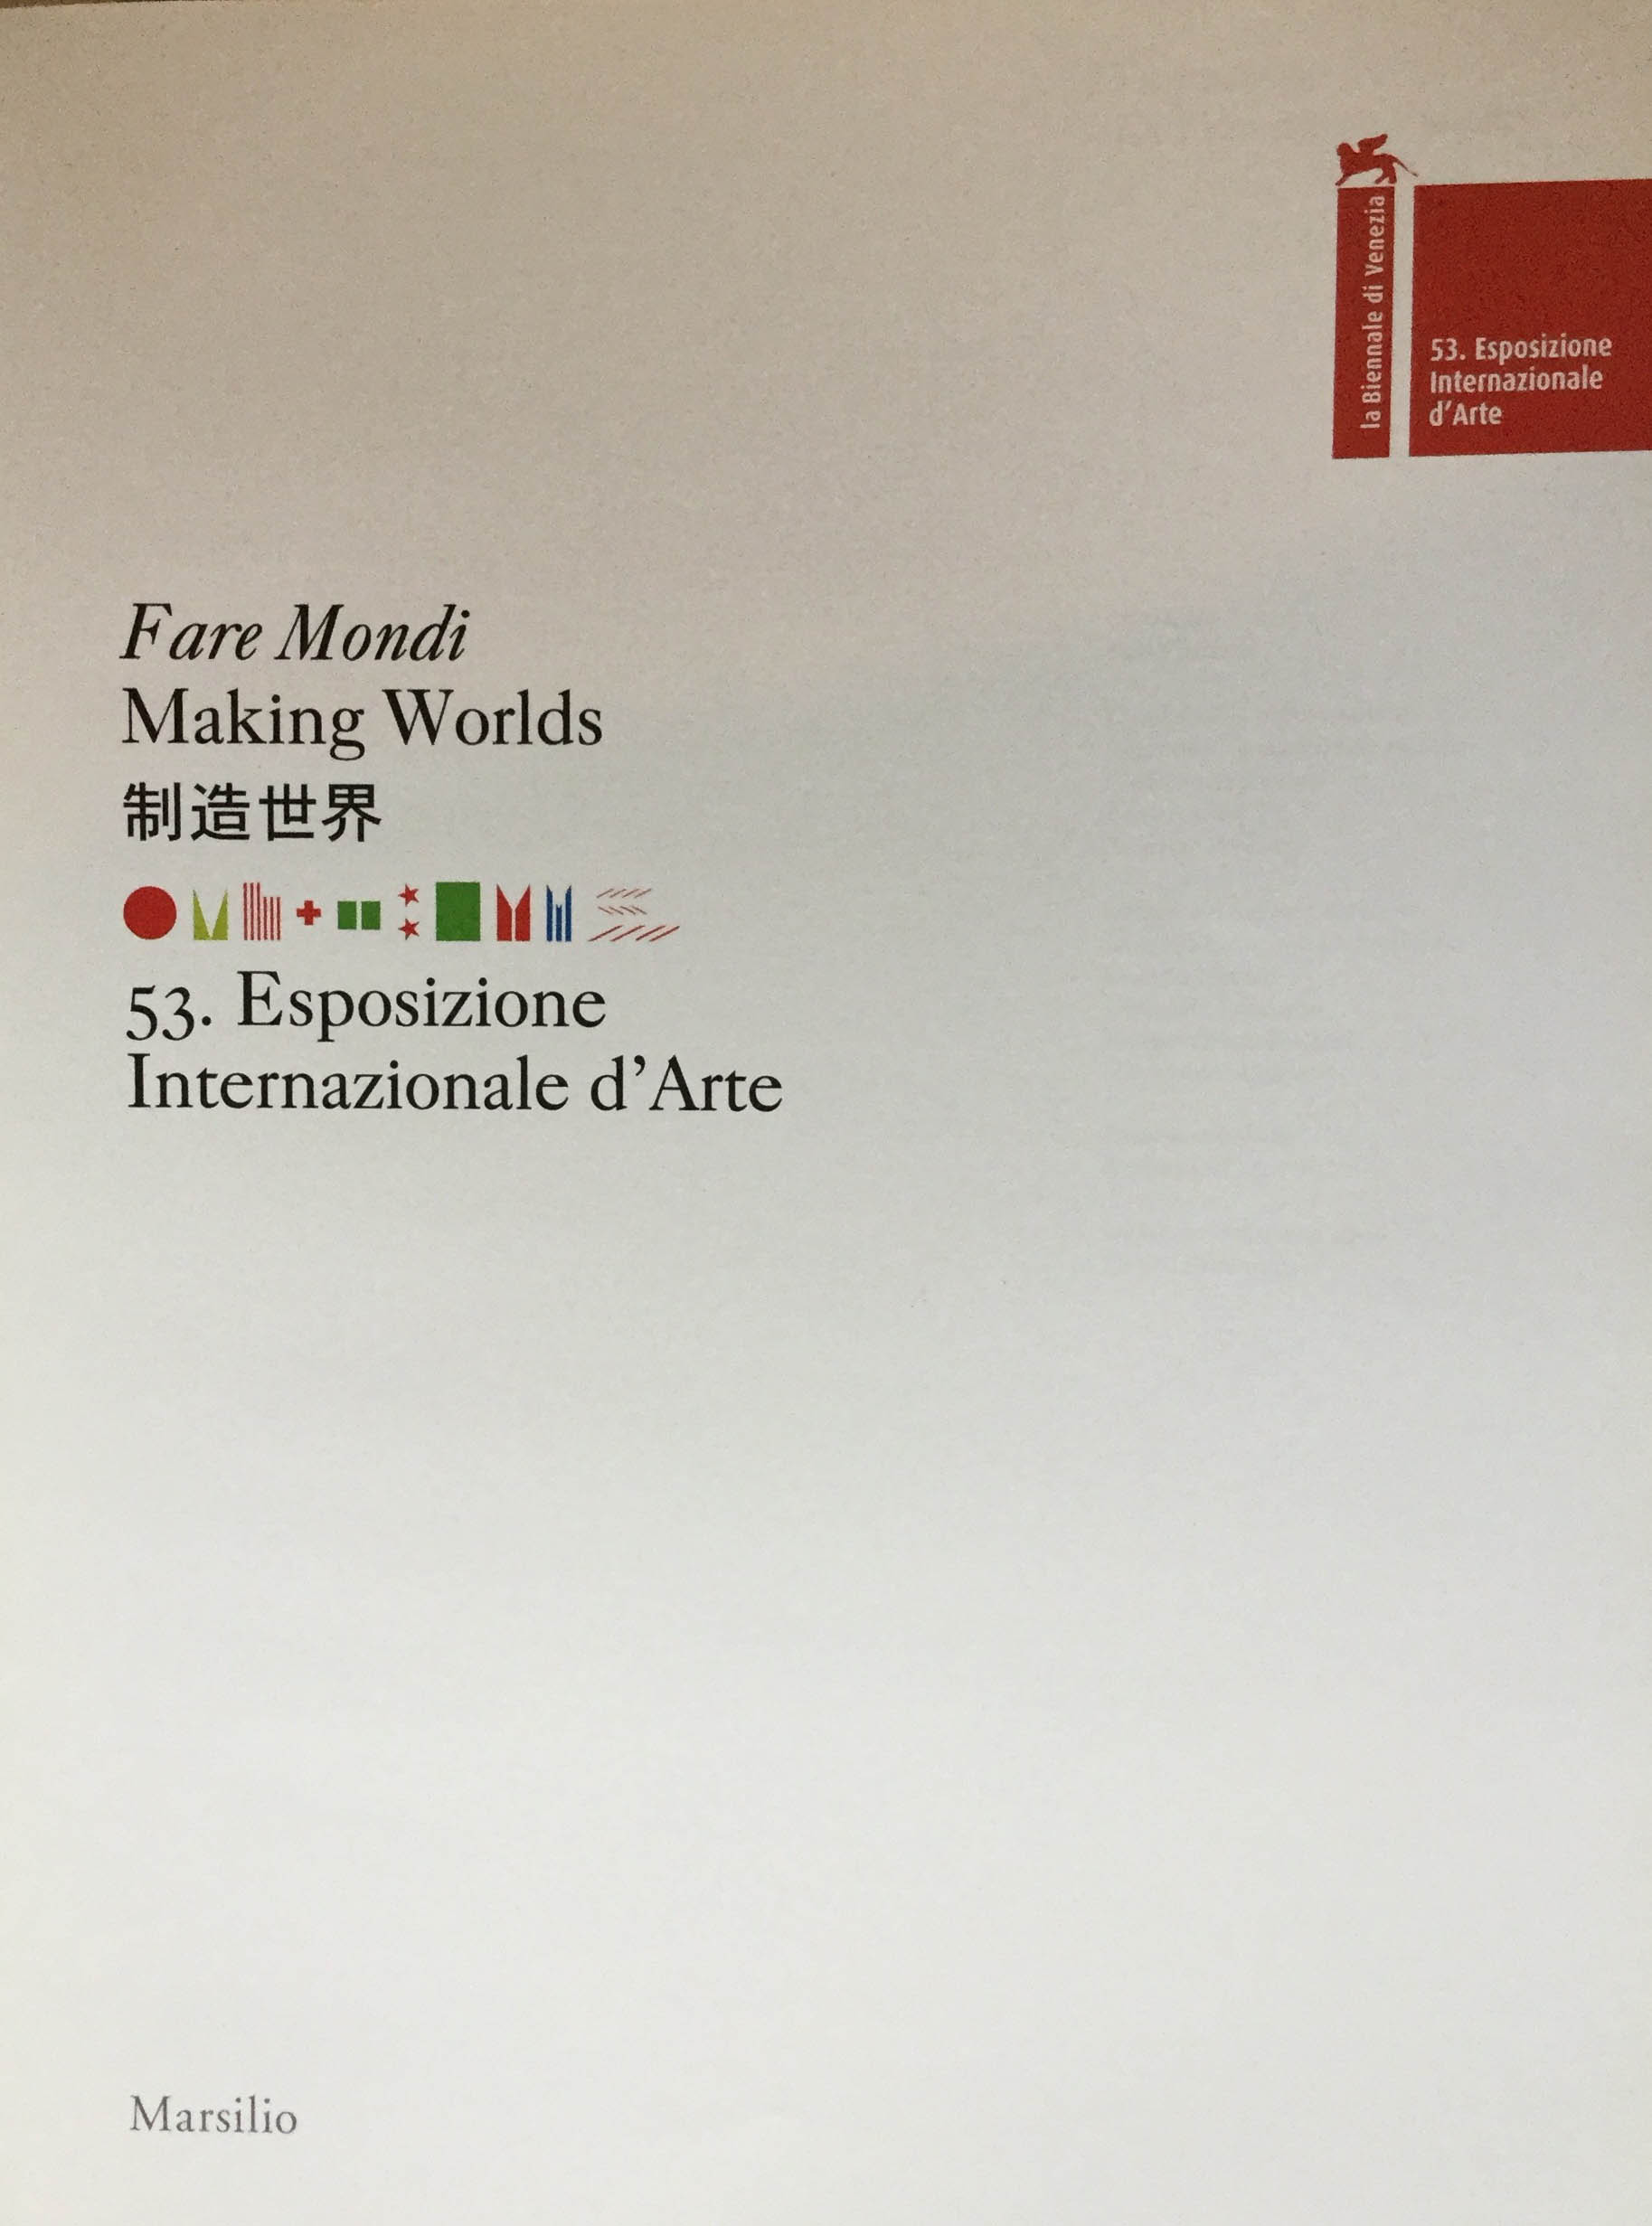 Fare mondi - making worlds